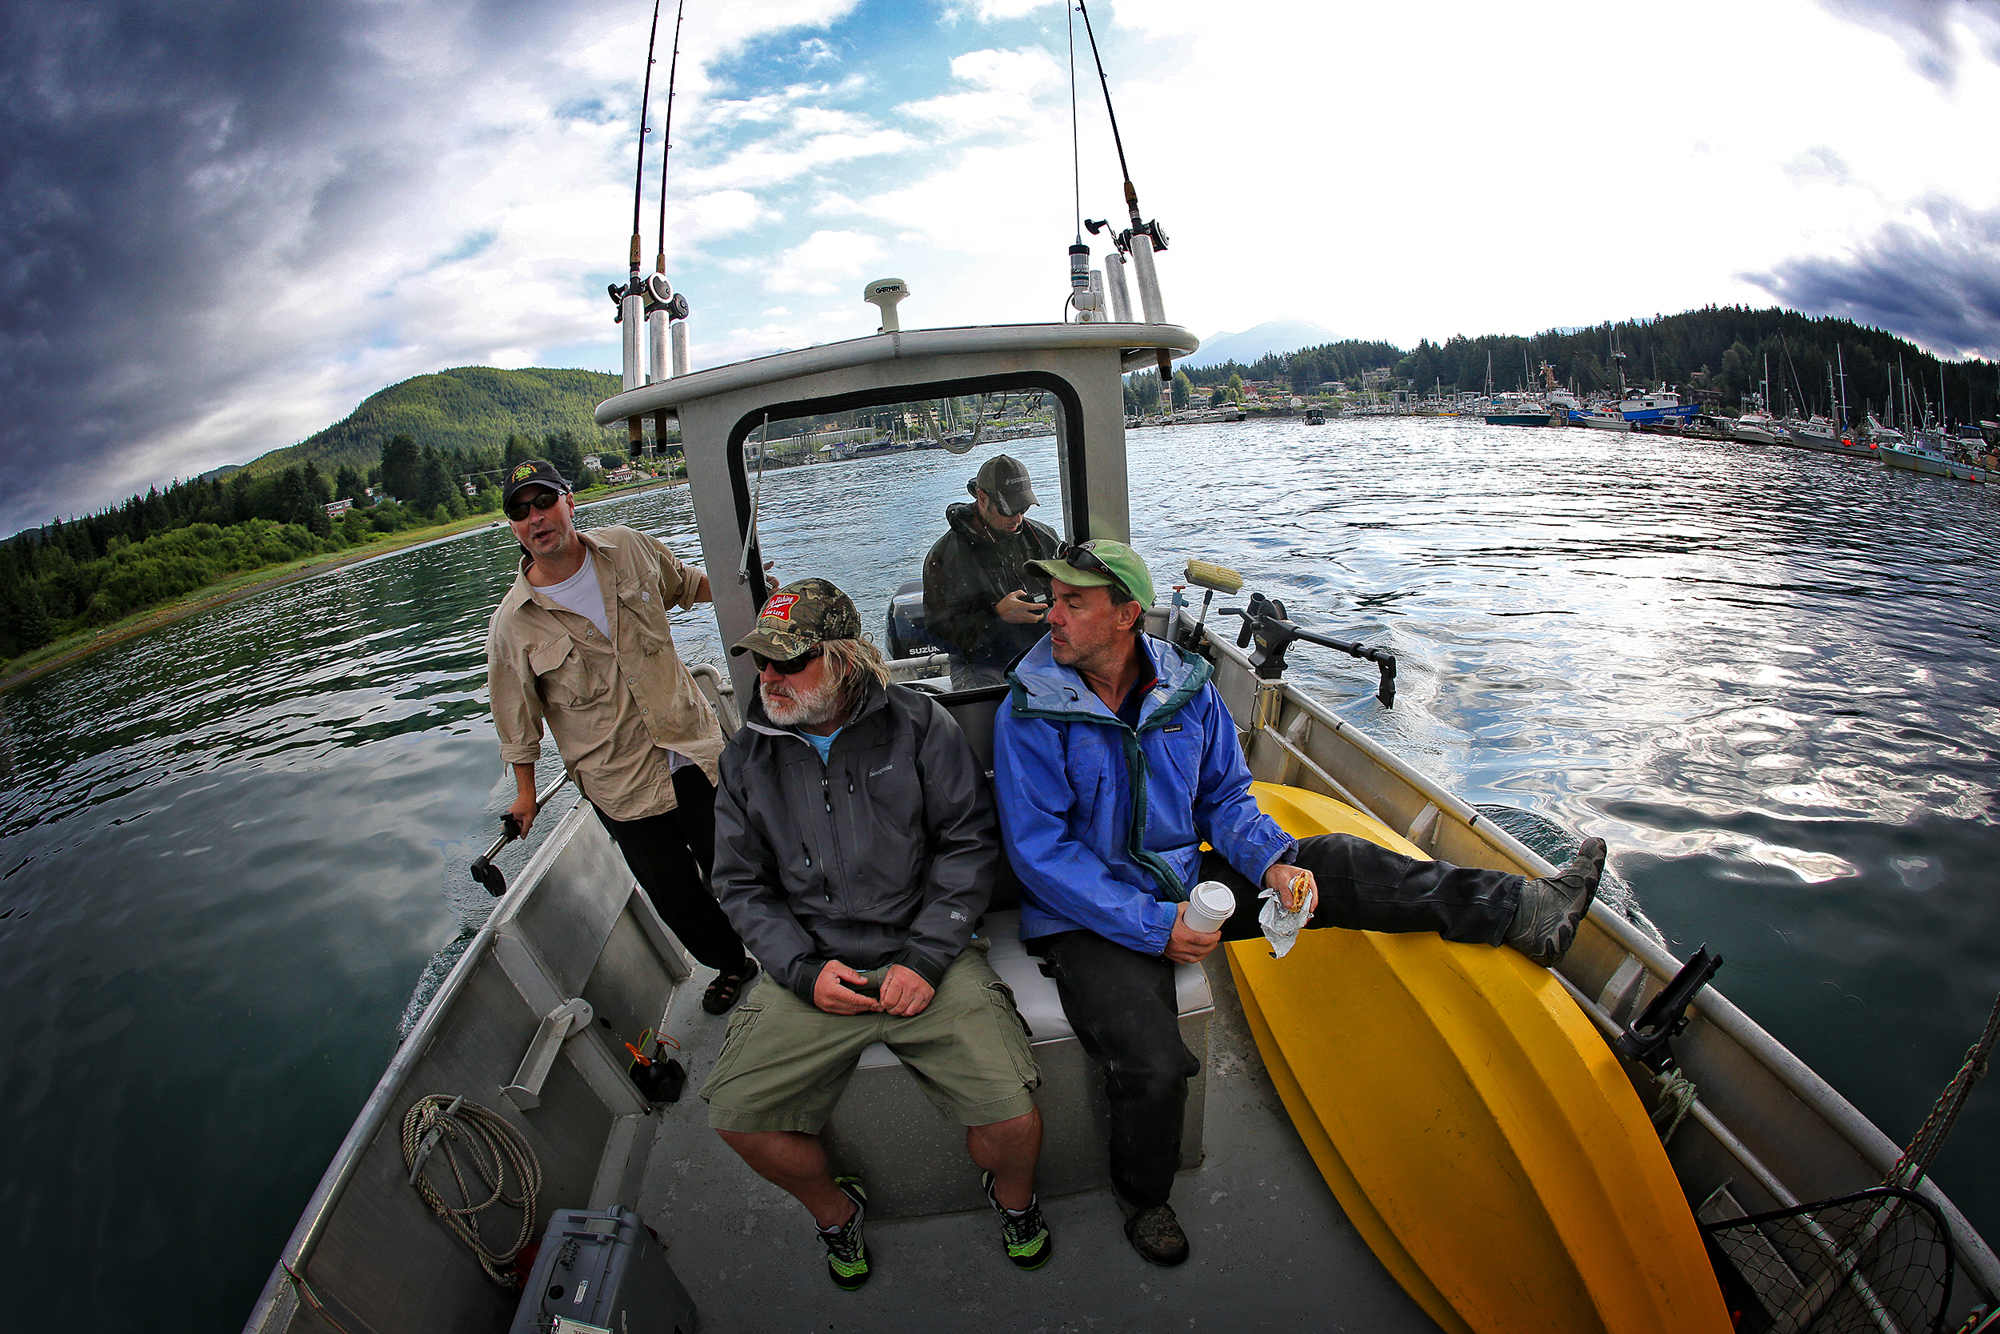 Setting out by boat from a Juneau Harbor for Admiralty Island, talk is of bears. Admiralty is home to the world's highest concentration of brown bears, with a concentration of just under one bear per square mile (photo: Earl Harper).